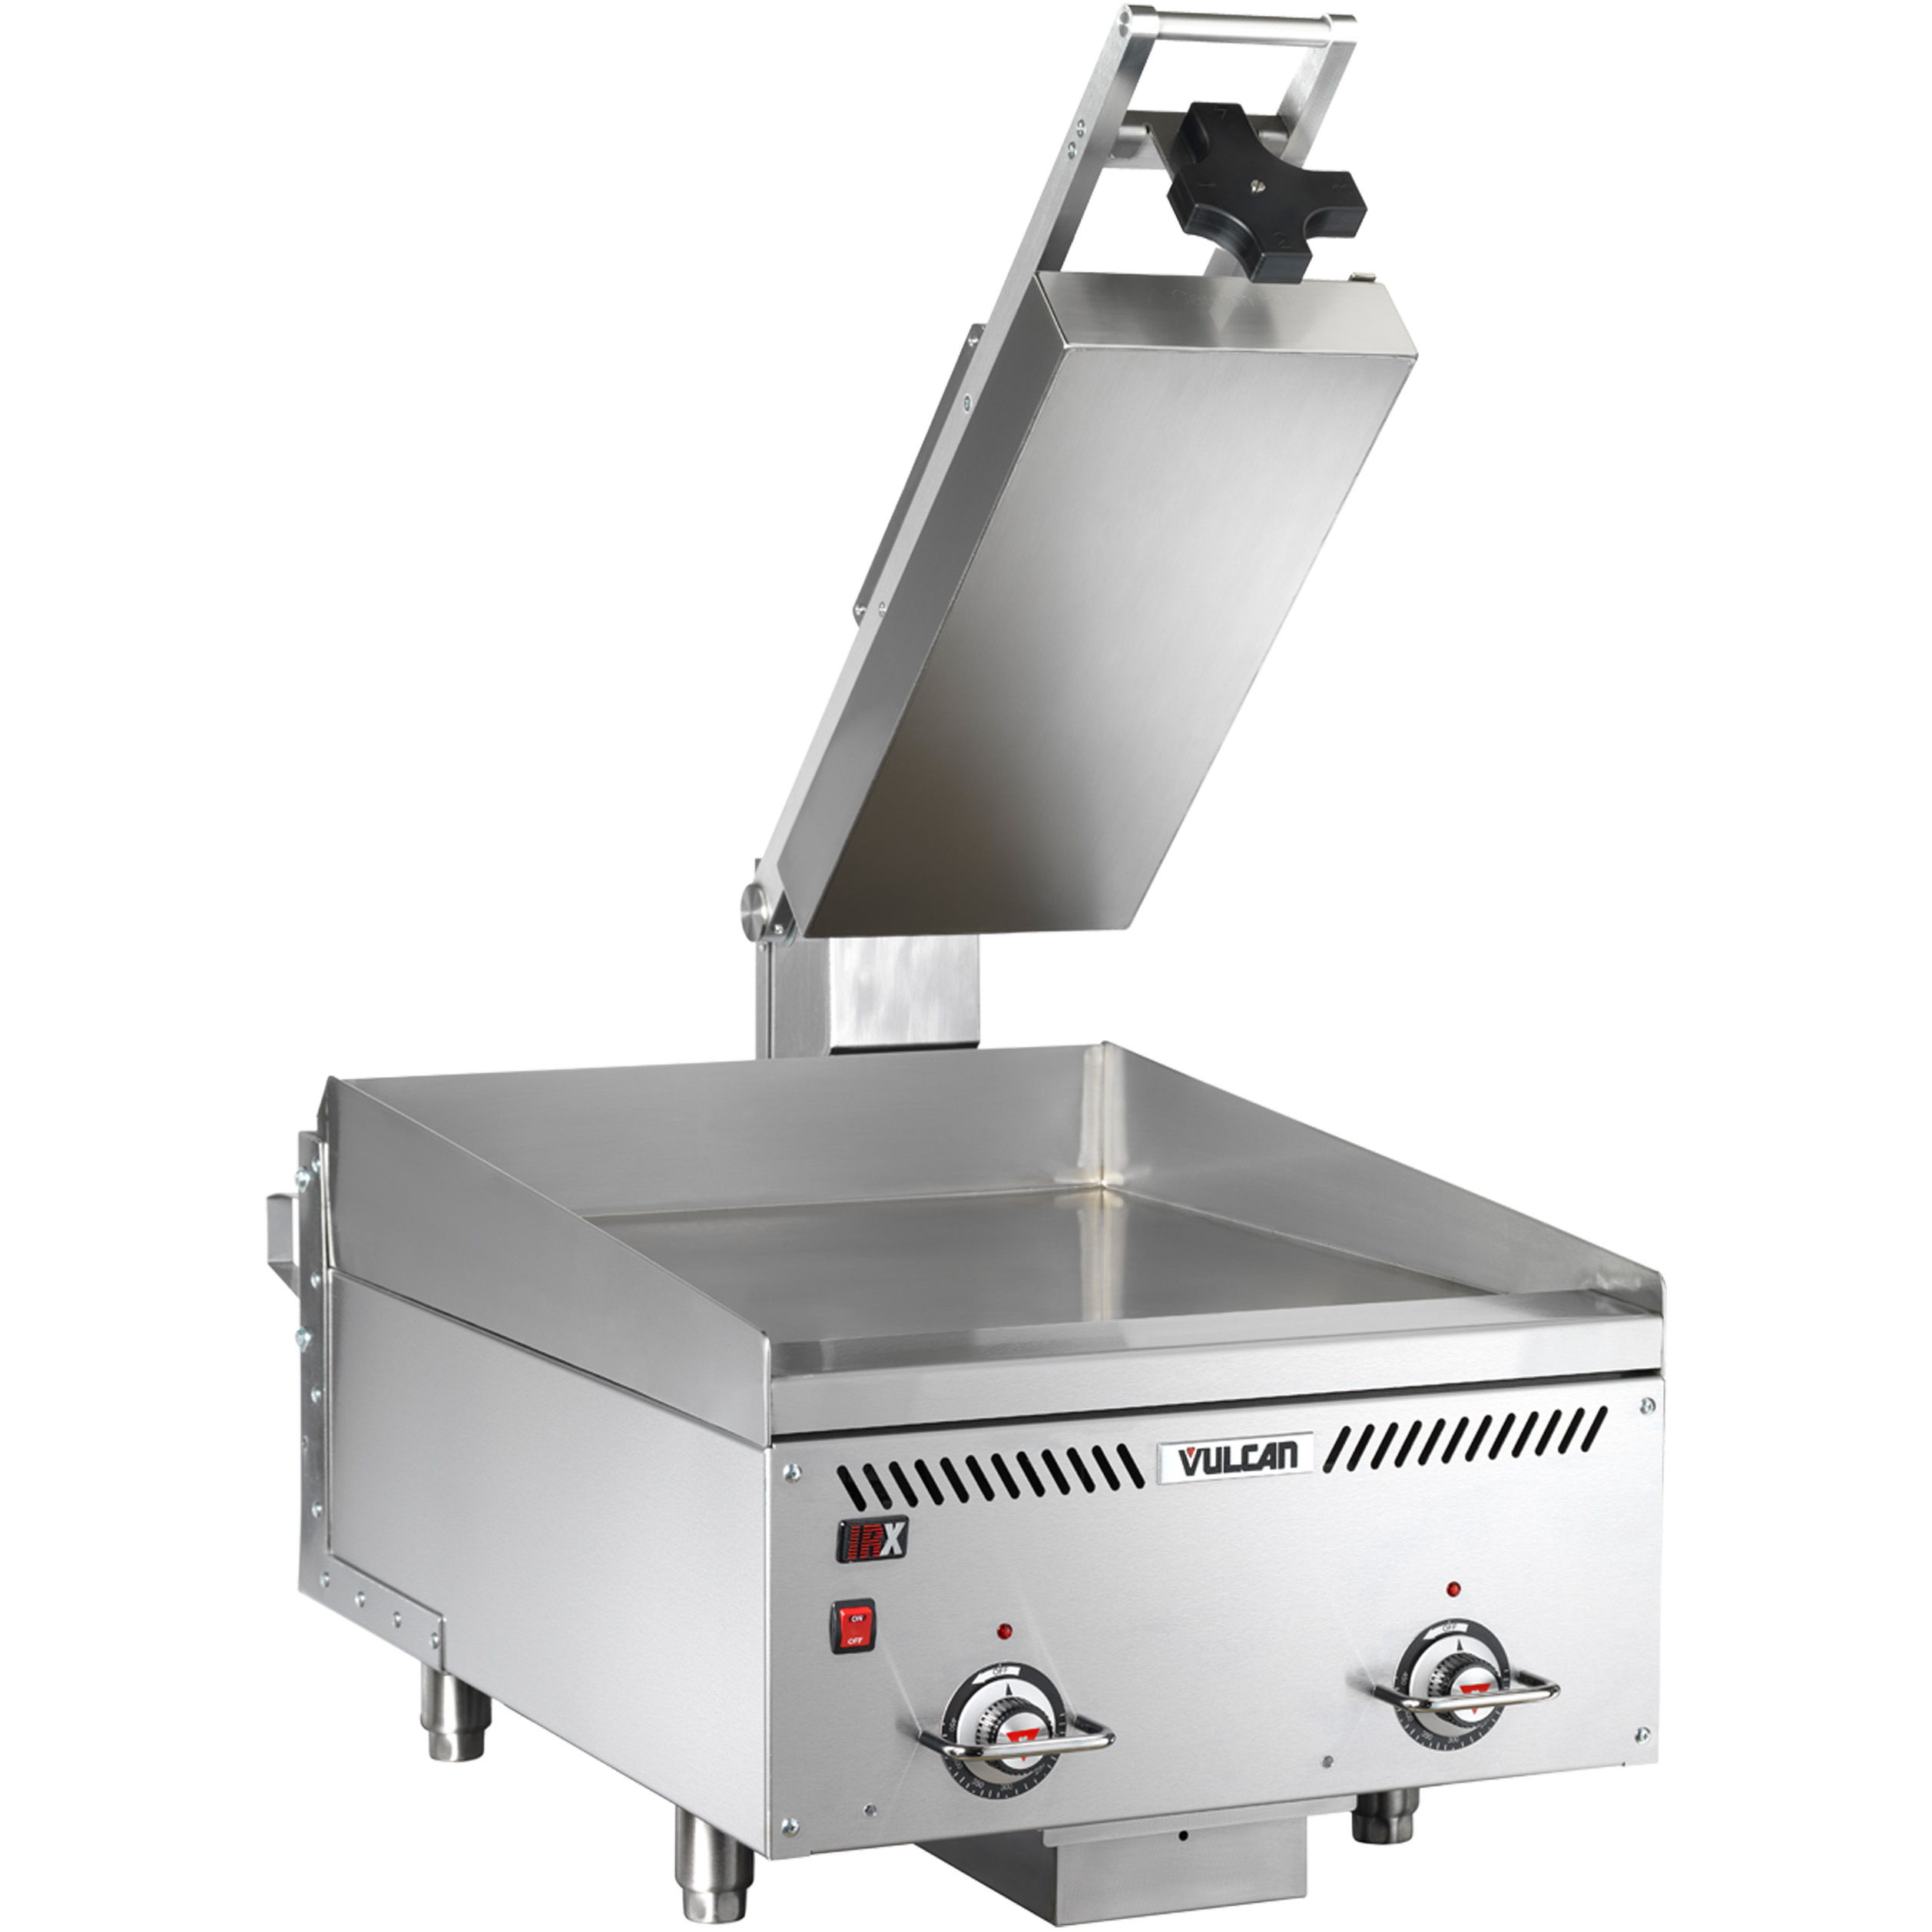 Vulcan VMCS-201 griddle with platens, electric